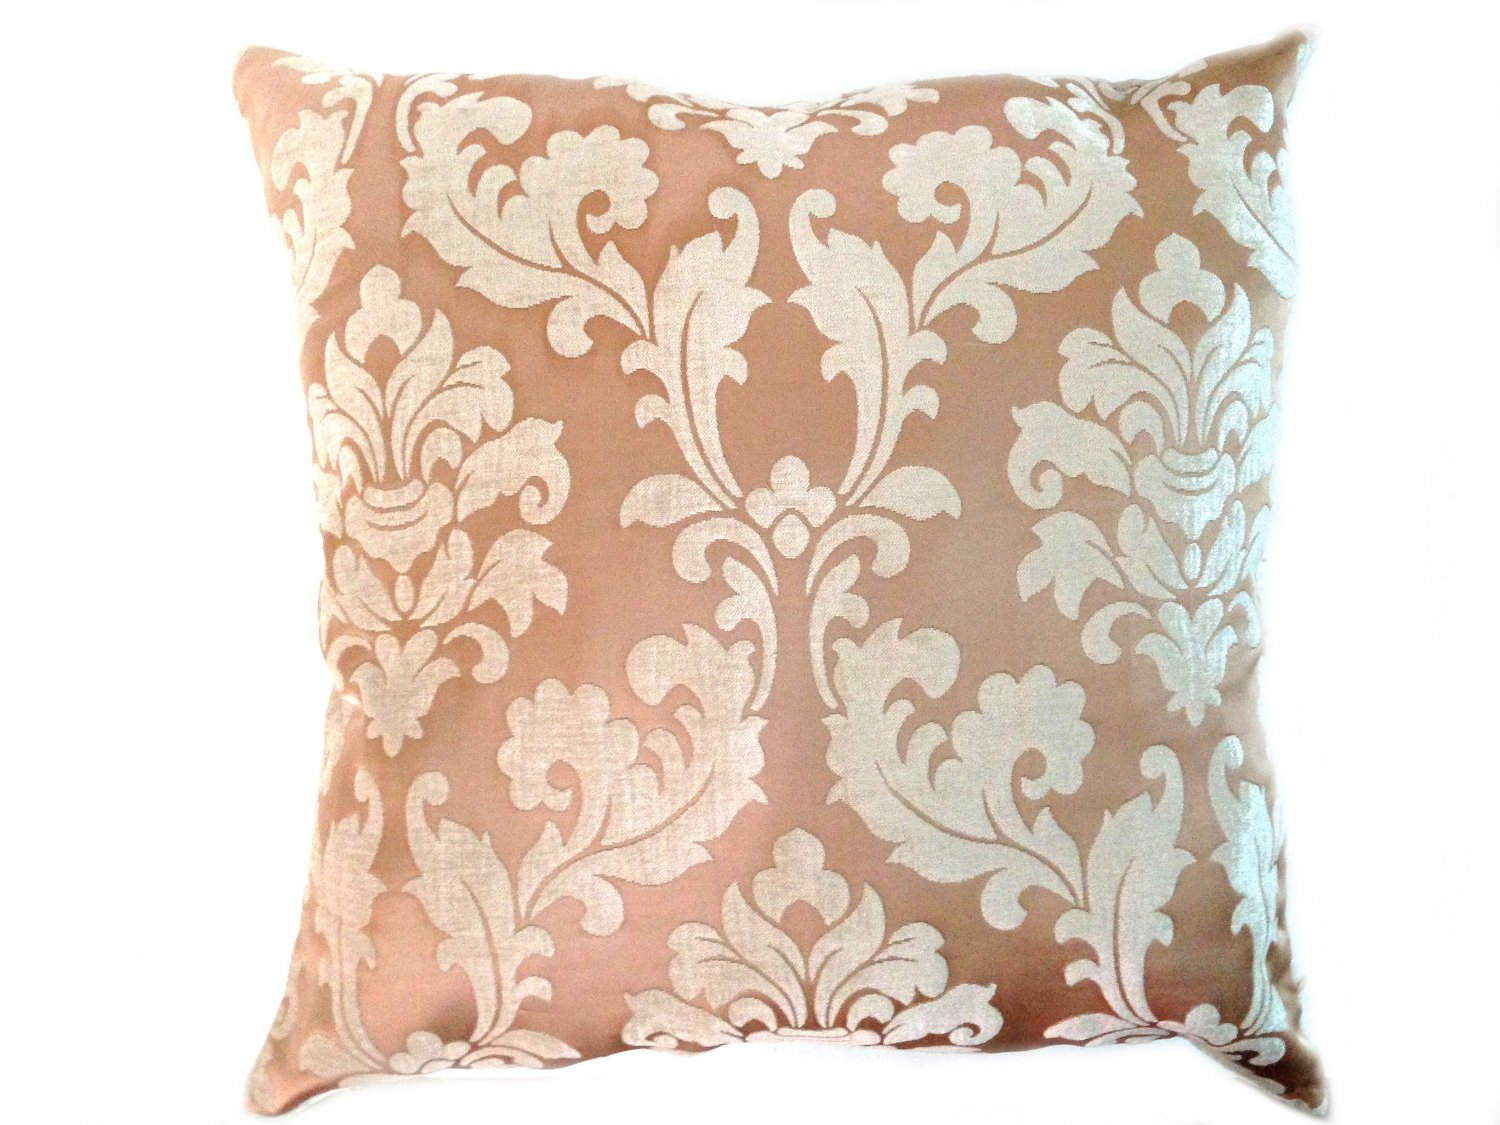 Embroidery Pillow Vintage Pillow Case 24x24 Pillow Cover Vintage Cushion Cover Decorative Pillow